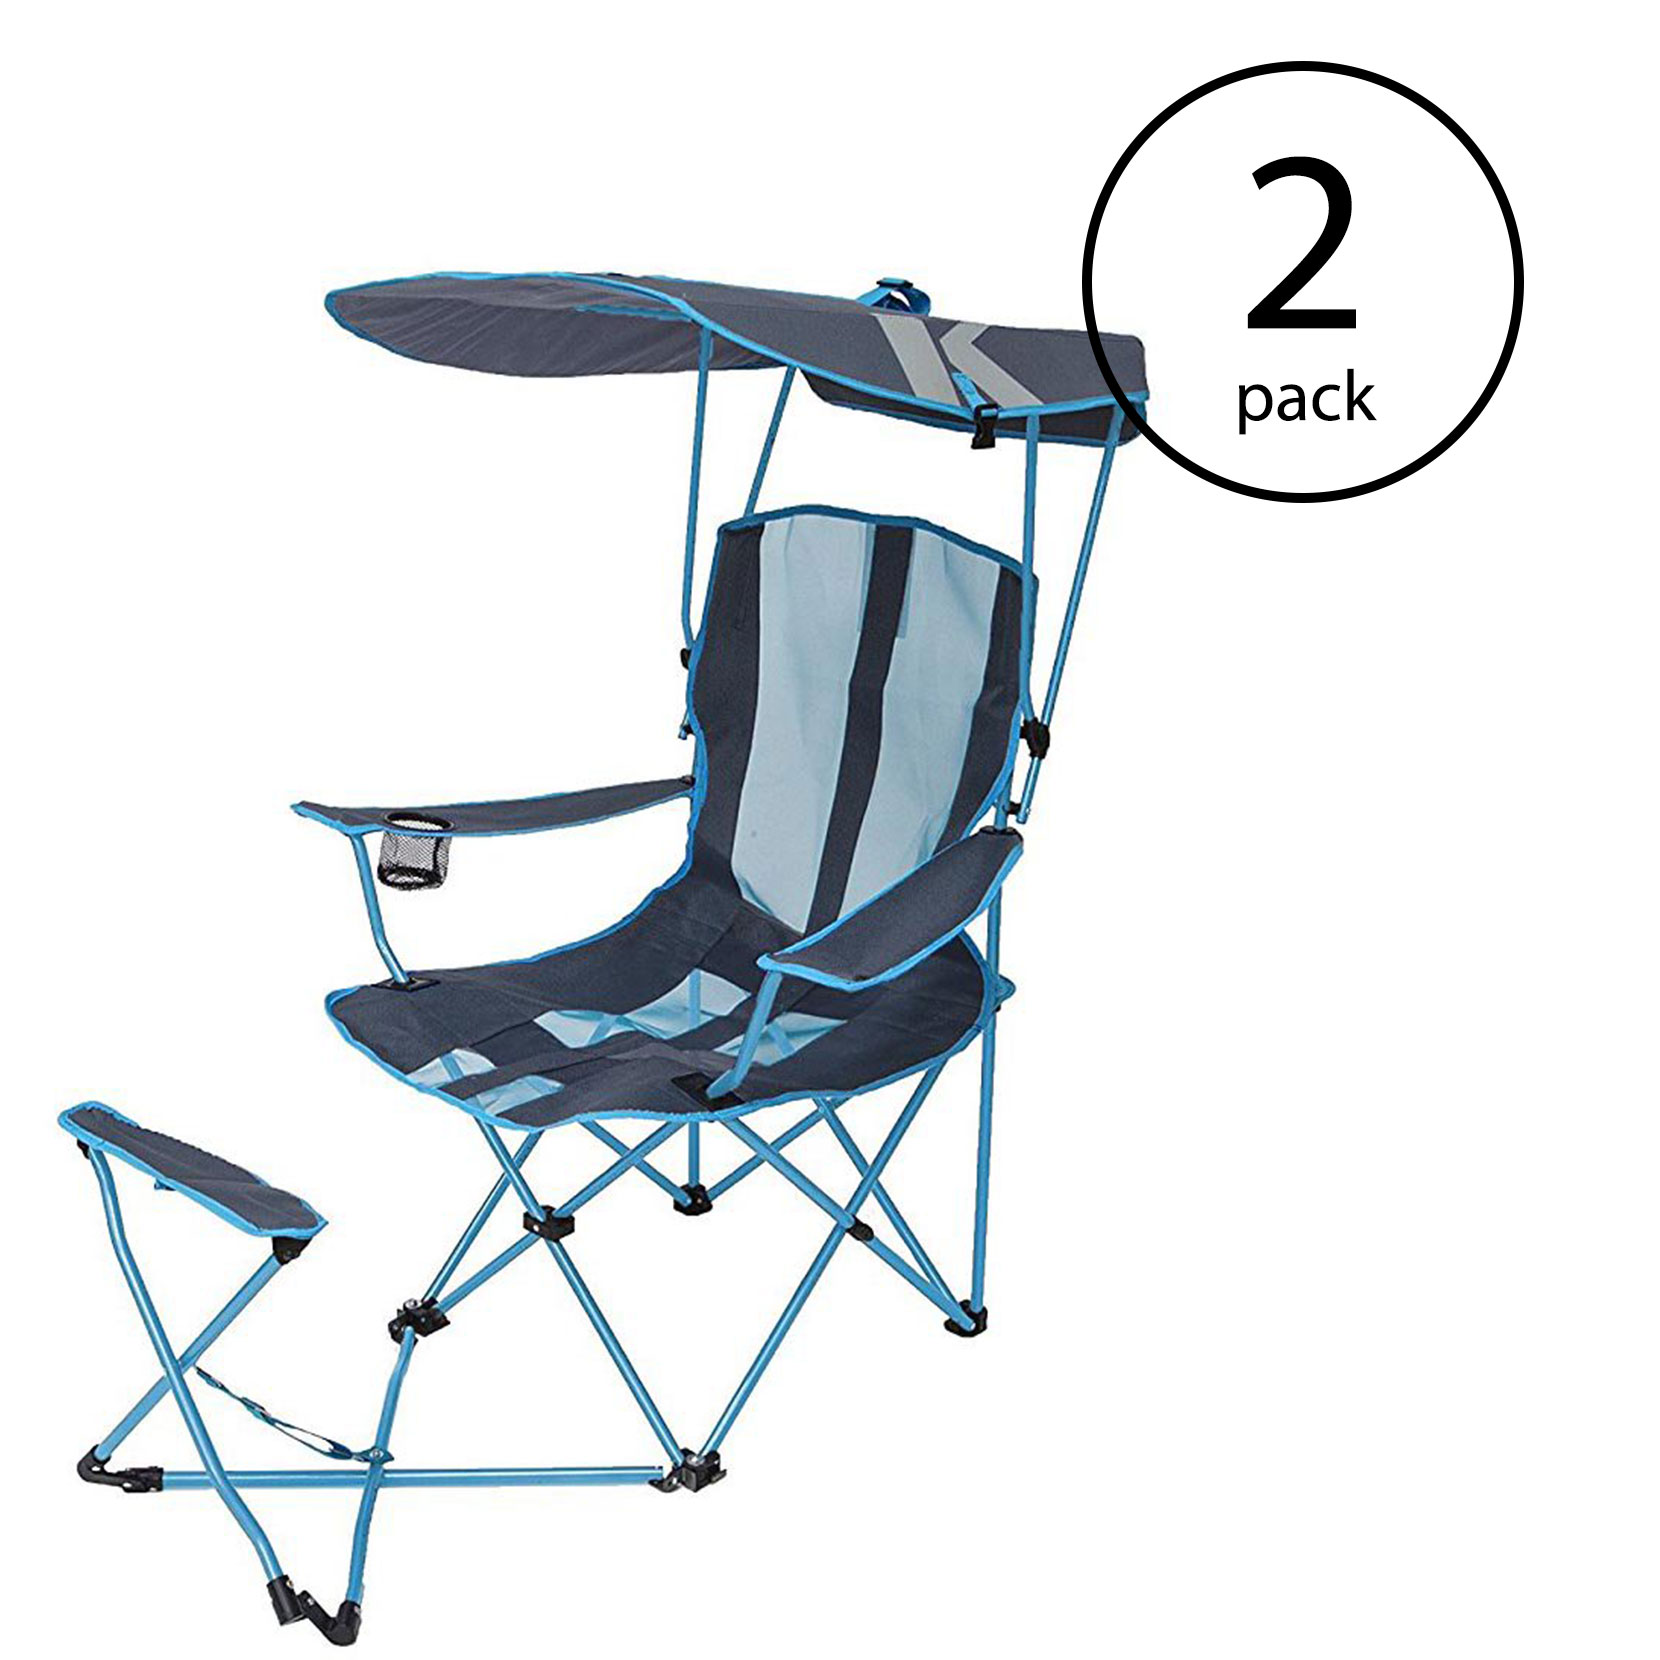 Details About Kelsyus Original Canopy Shade Folding Camping Chair With Ottoman Blue 2 Pack